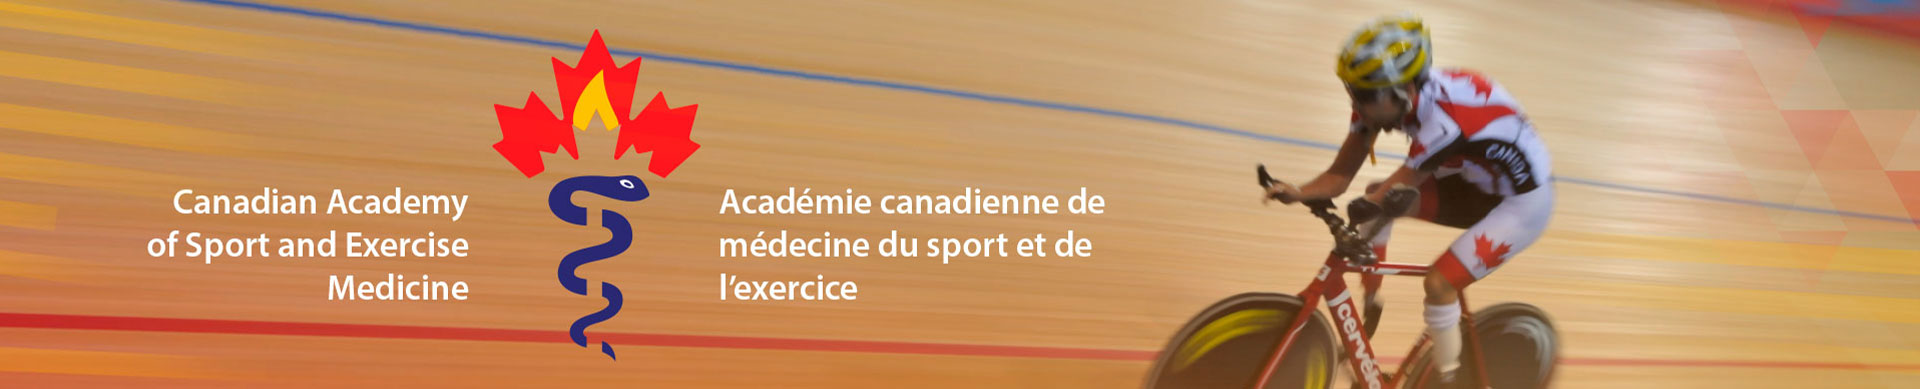 The Canadian Academy of Sport and Exercise Medicine Releases New Statement Urging Policy Makers to Ease Restrictions on Public Space Closures